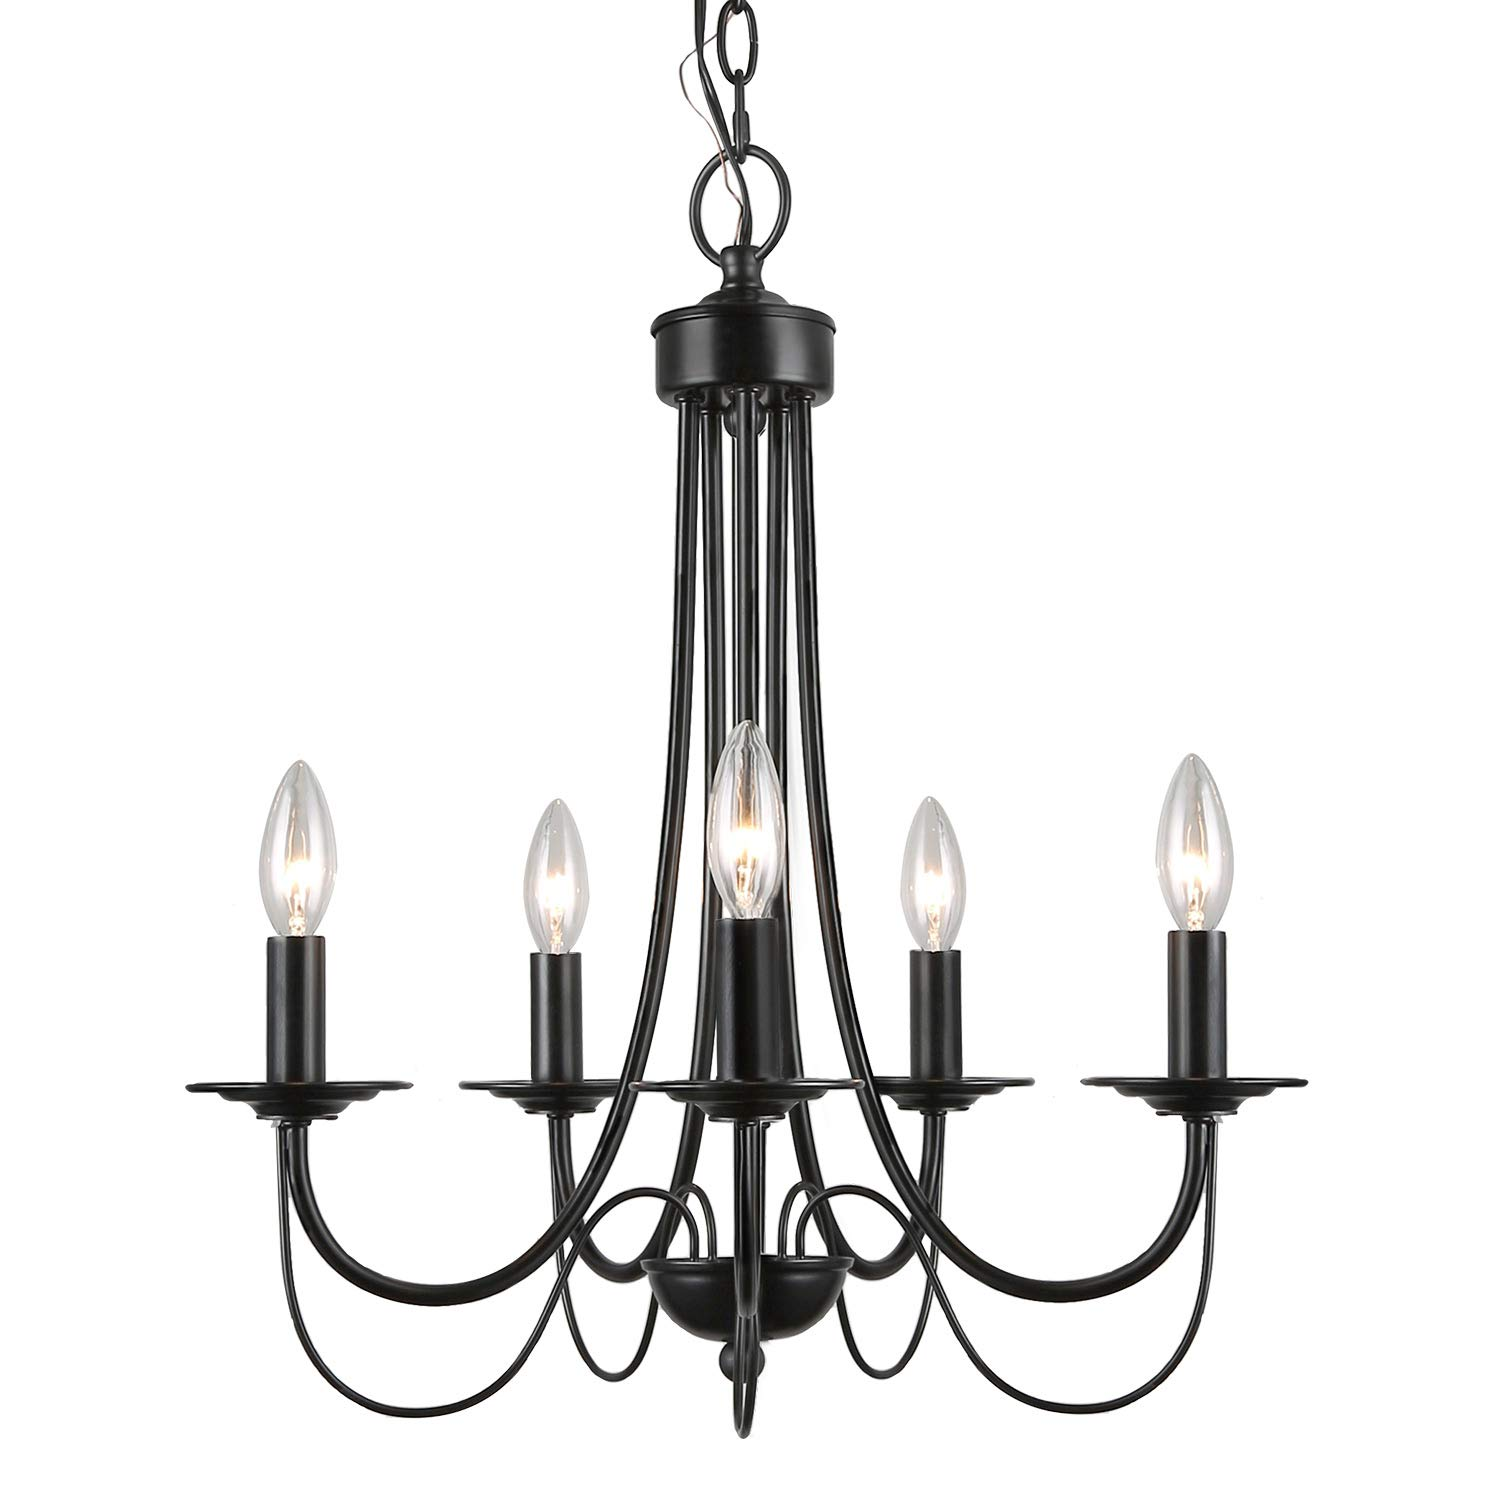 LALUZ 2-Layer Chandeliers, 5-Light, Black Candle Chandelier for Dining Room, Living Room and Foyer